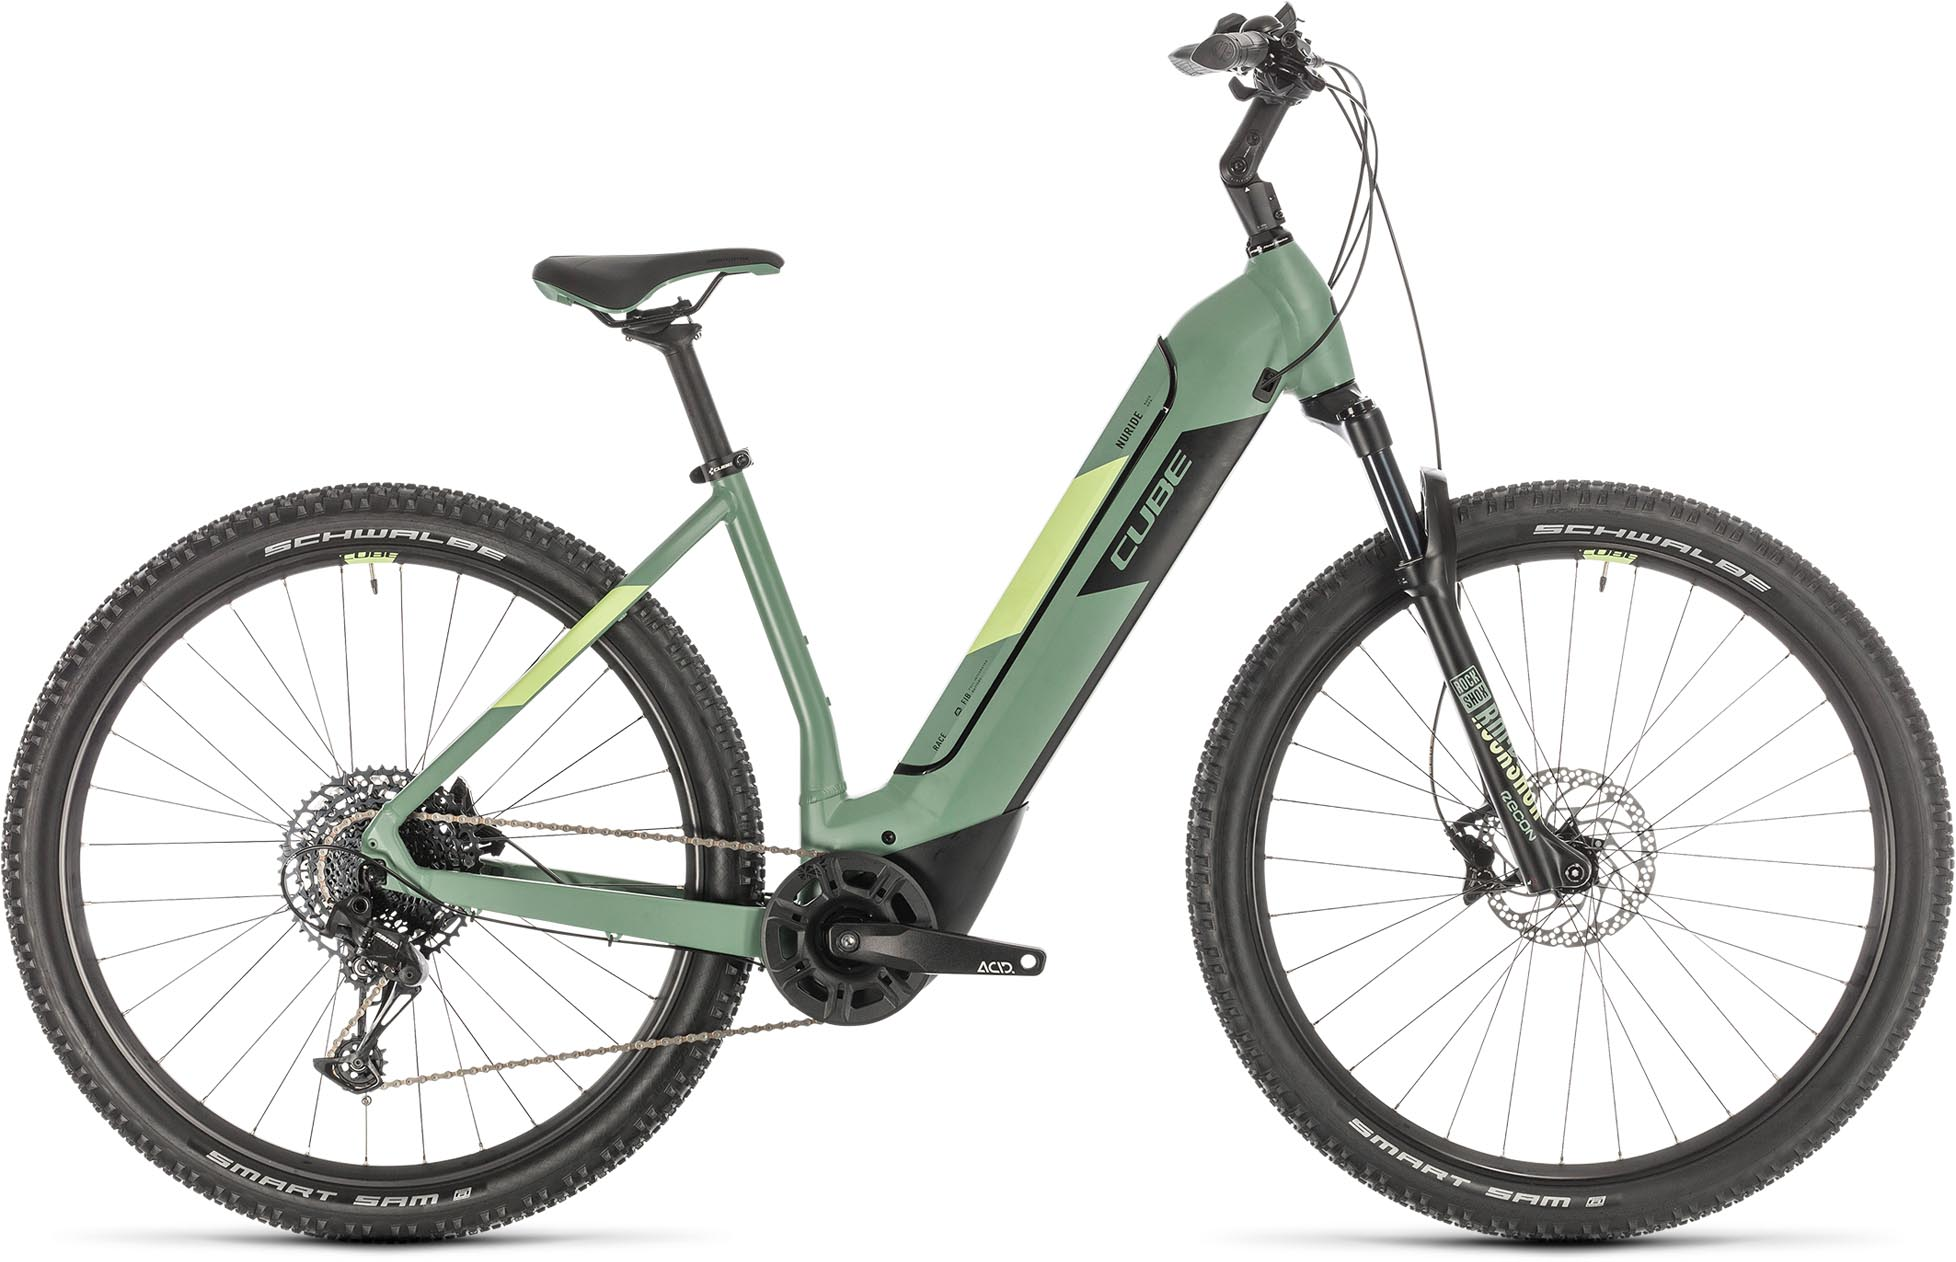 cube nuride hybrid exc 500 green n sharpgreen 2020 e bike hardtail mountainbike e bike. Black Bedroom Furniture Sets. Home Design Ideas